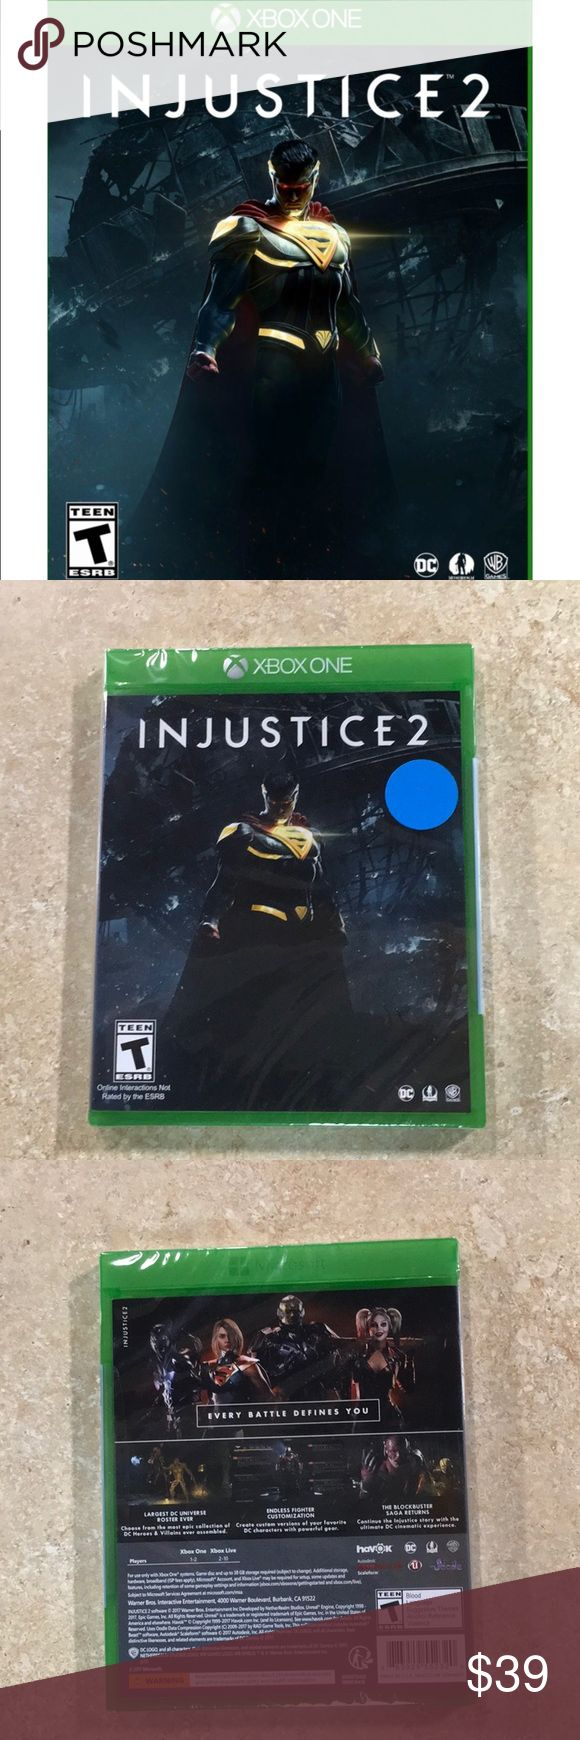 INJUSTICE 2 for Xbox one New never opened injustice 2 video game for xbox one Xbox Other